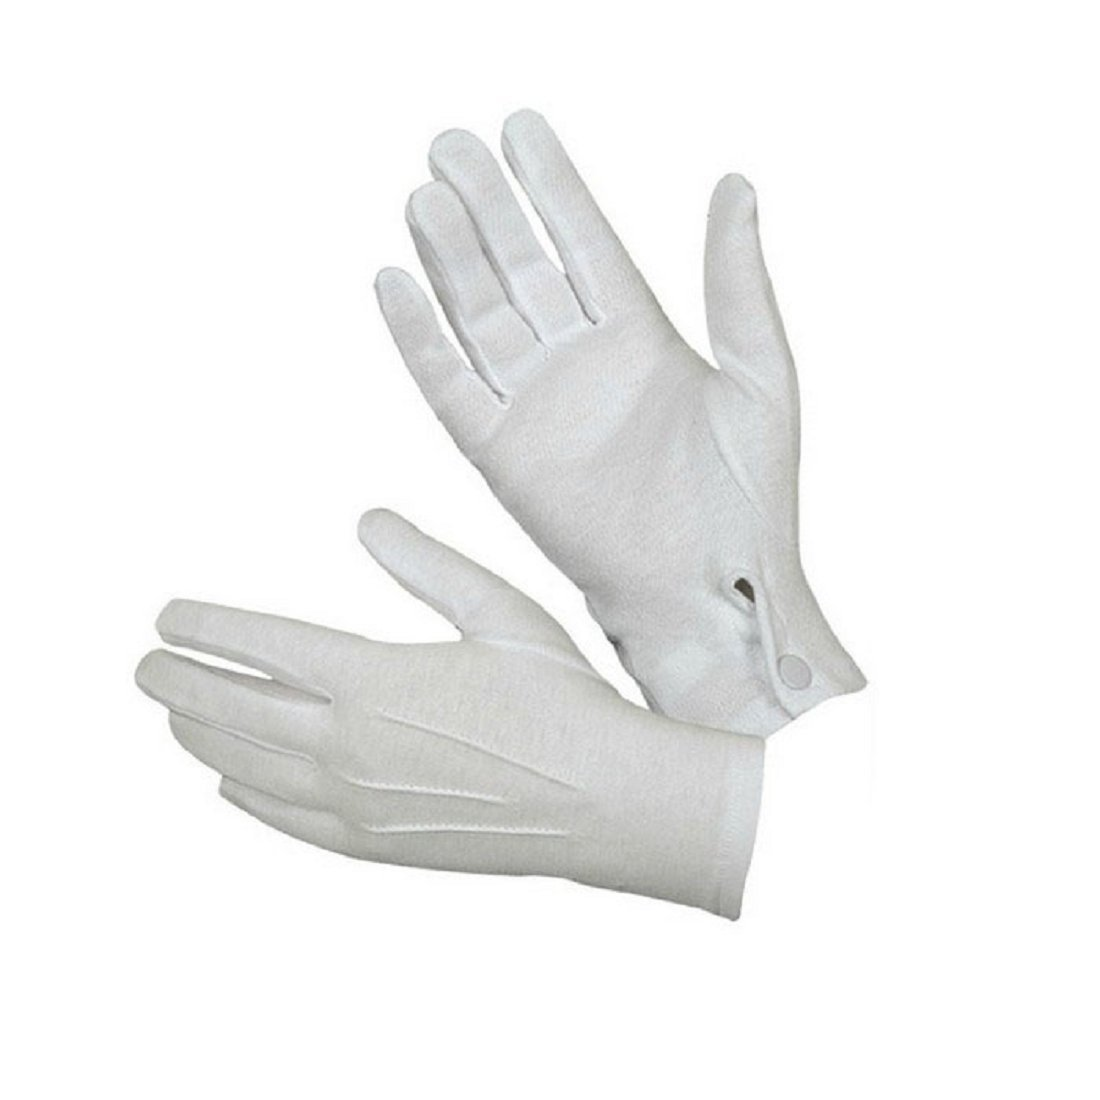 Sannysis 1Pair White Tuxedo Honor Guard Parade Men Inspection Formal Gloves